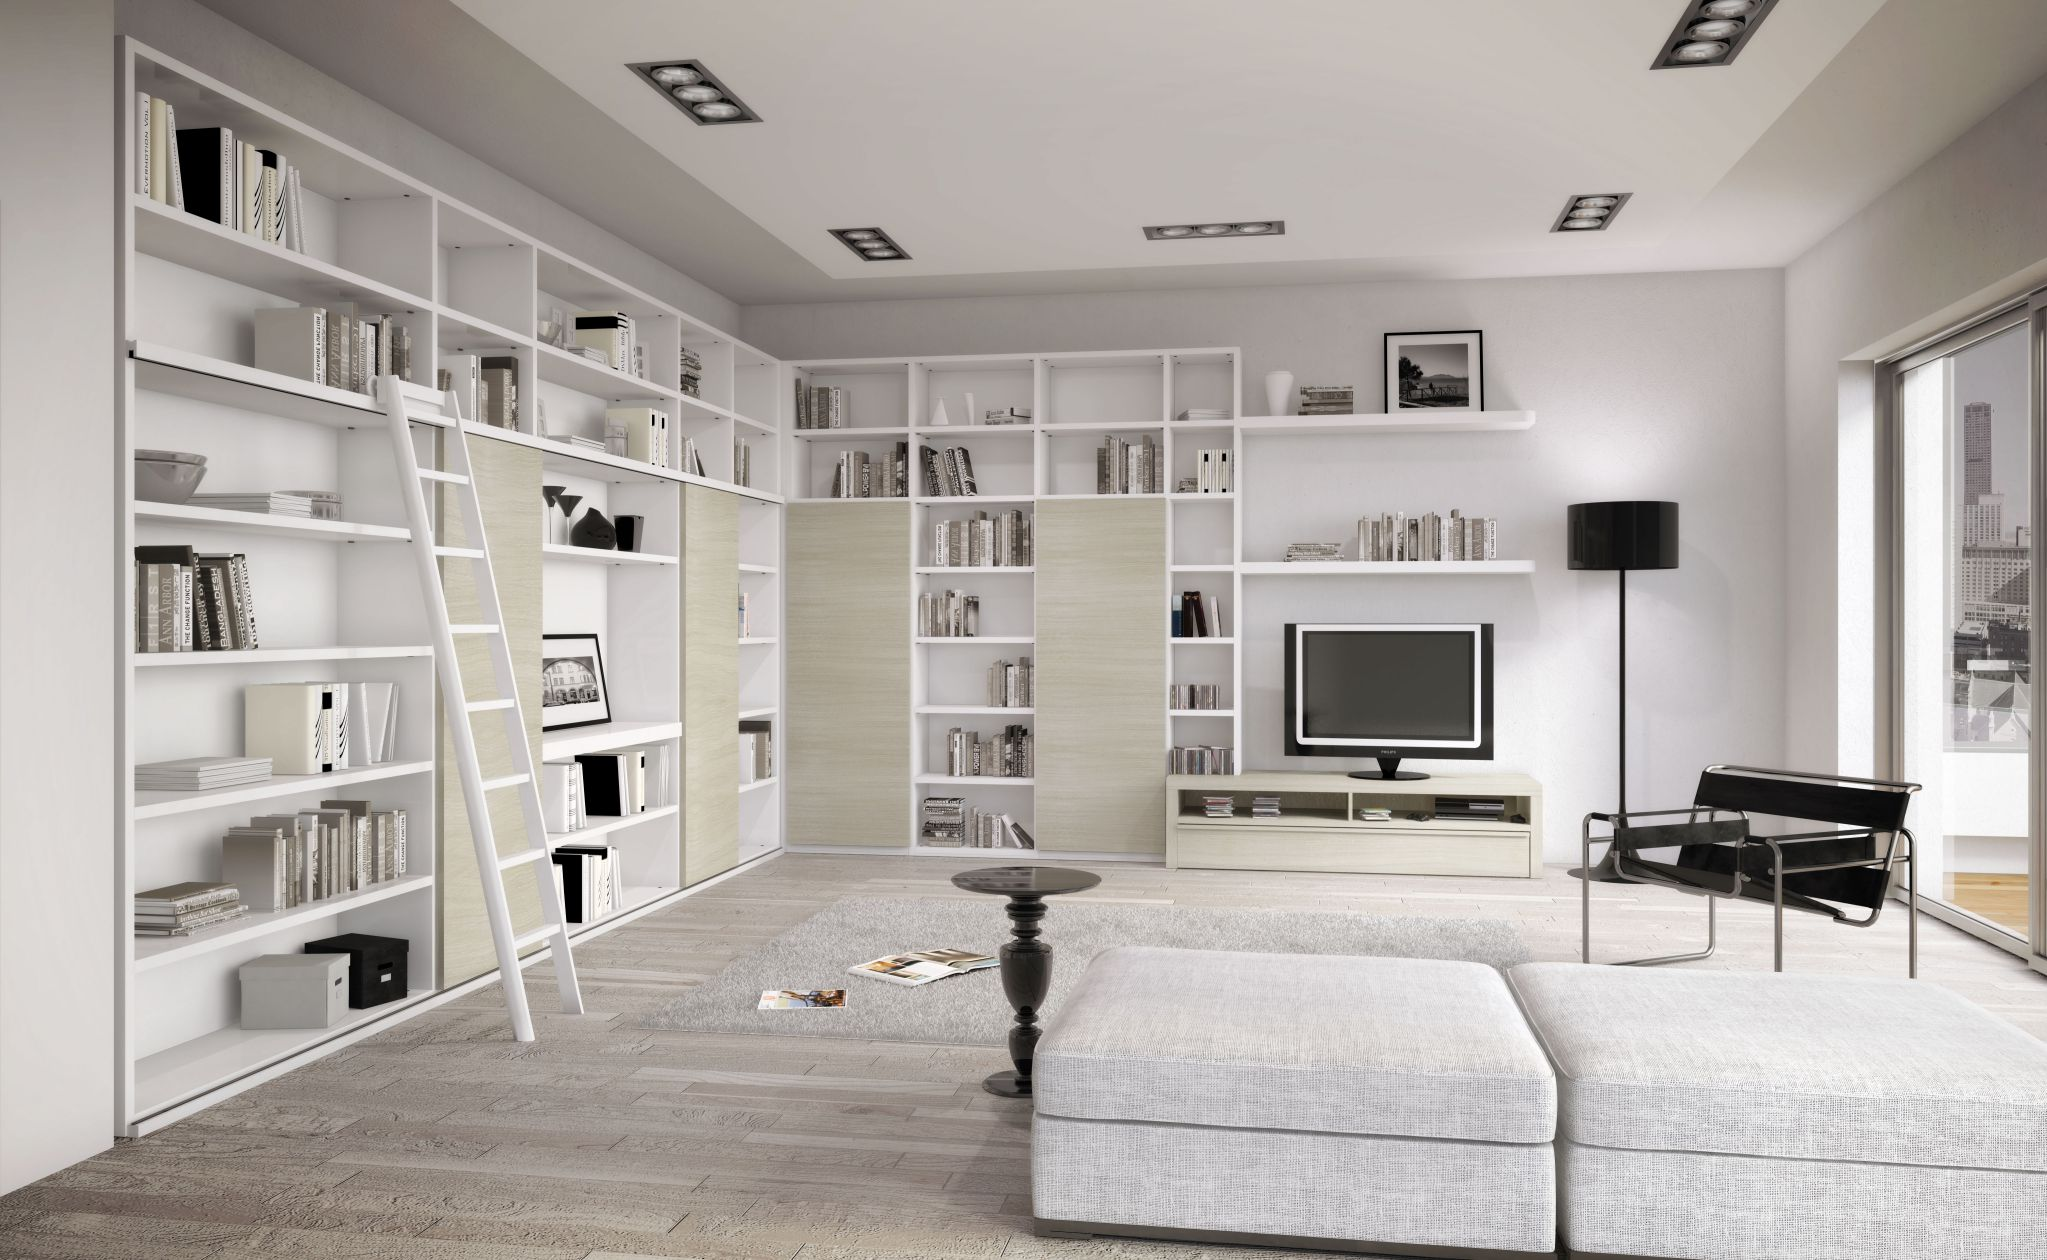 Interesting Interior White Living Space Using Book Shelve and Charming Sofa